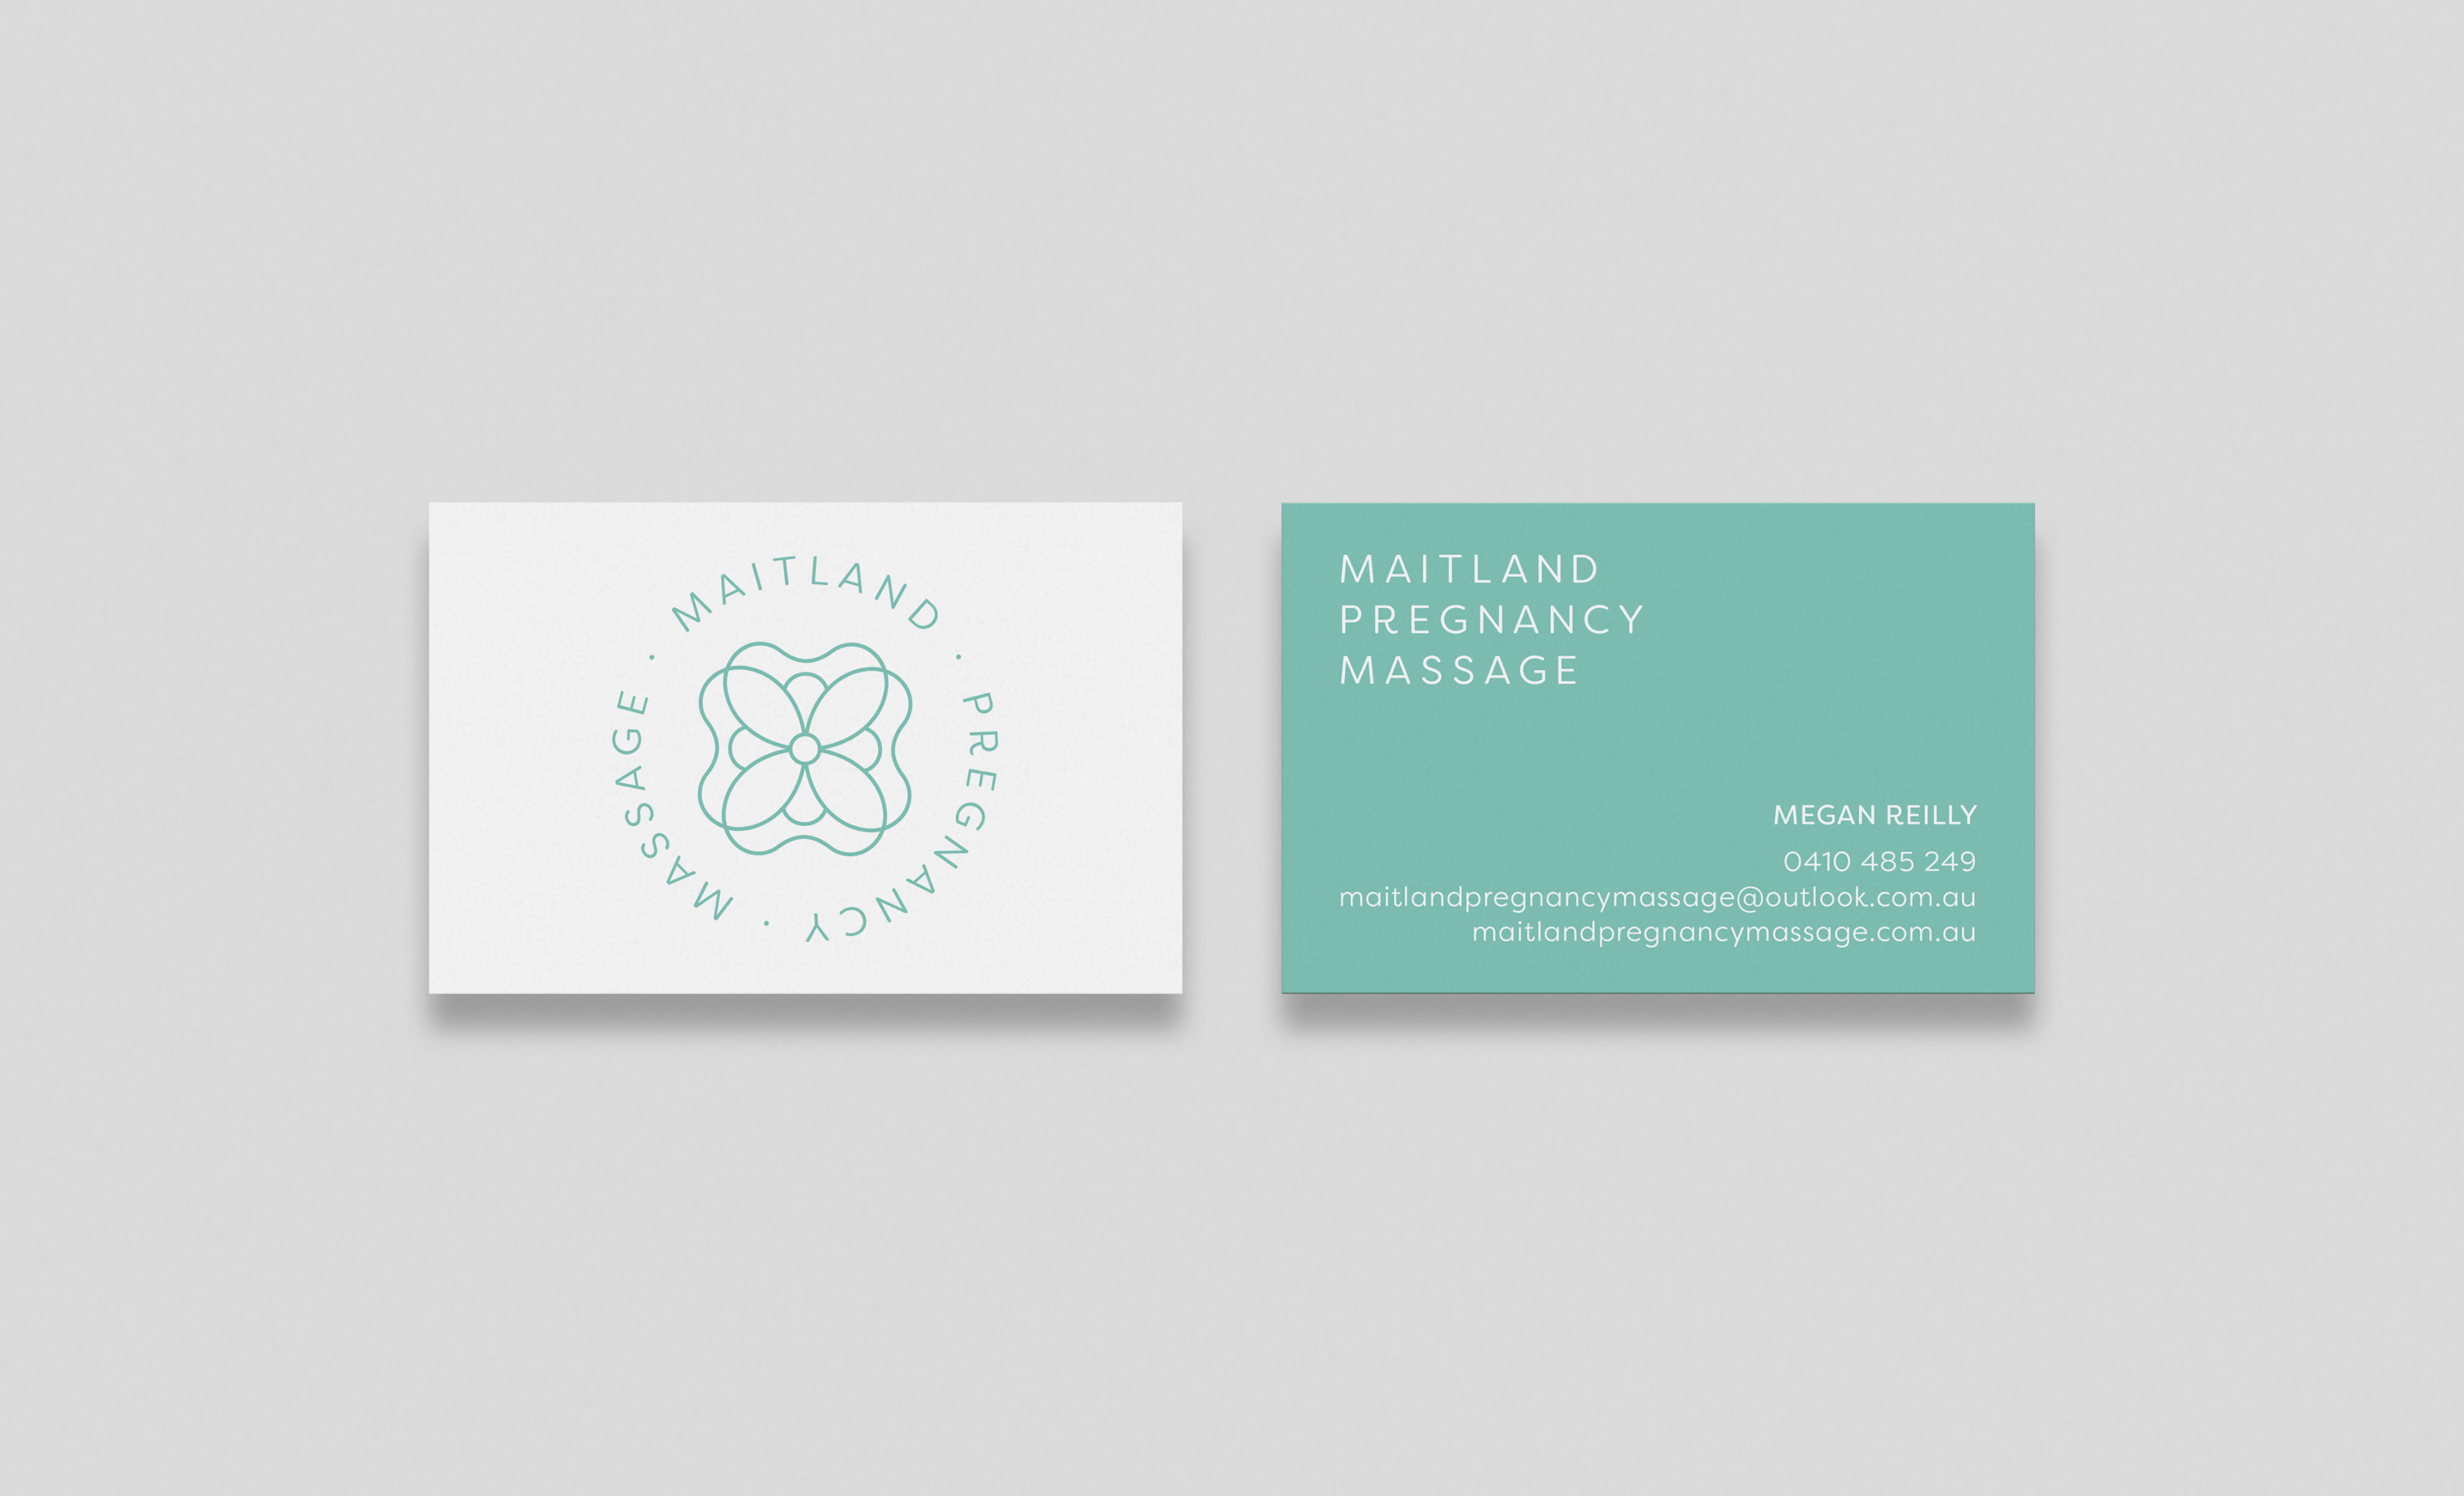 Maitland Pregnancy Massage Business Card